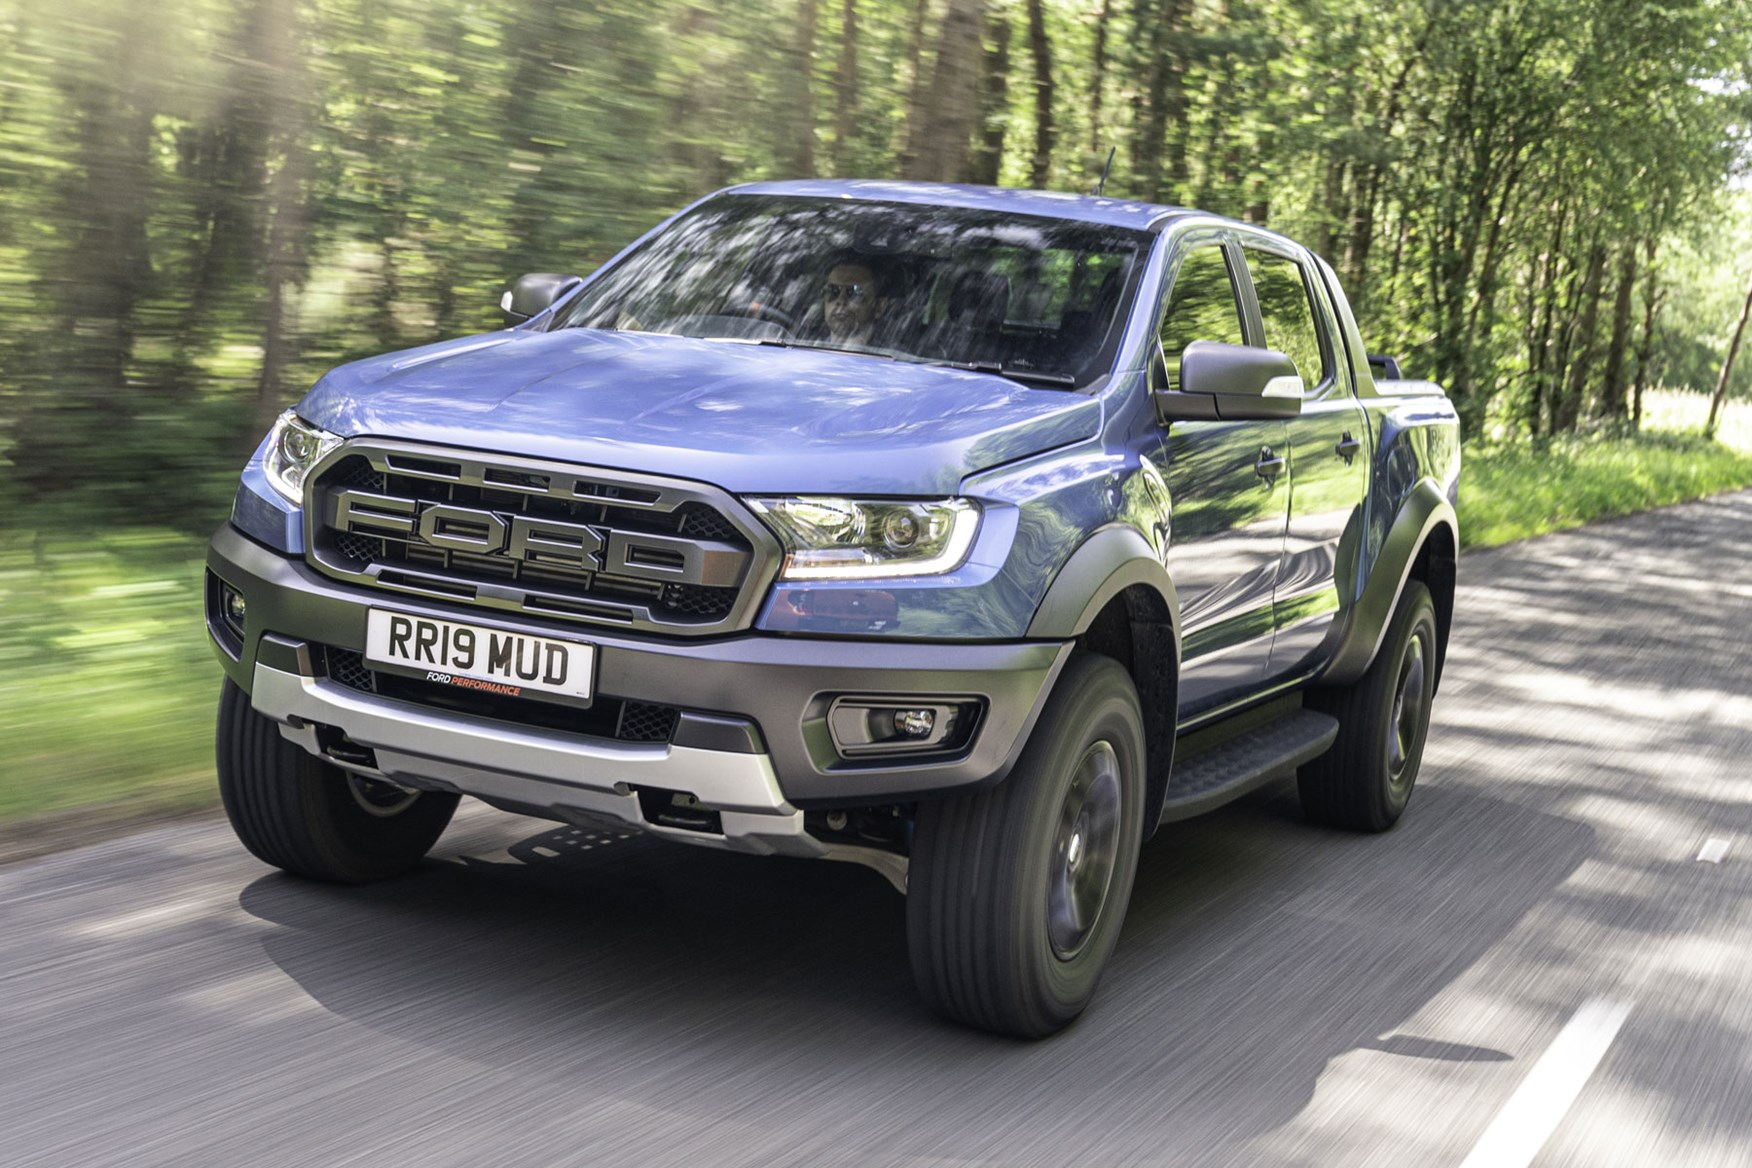 Ford Ranger Raptor review - front view, blue, driving on road, 2019